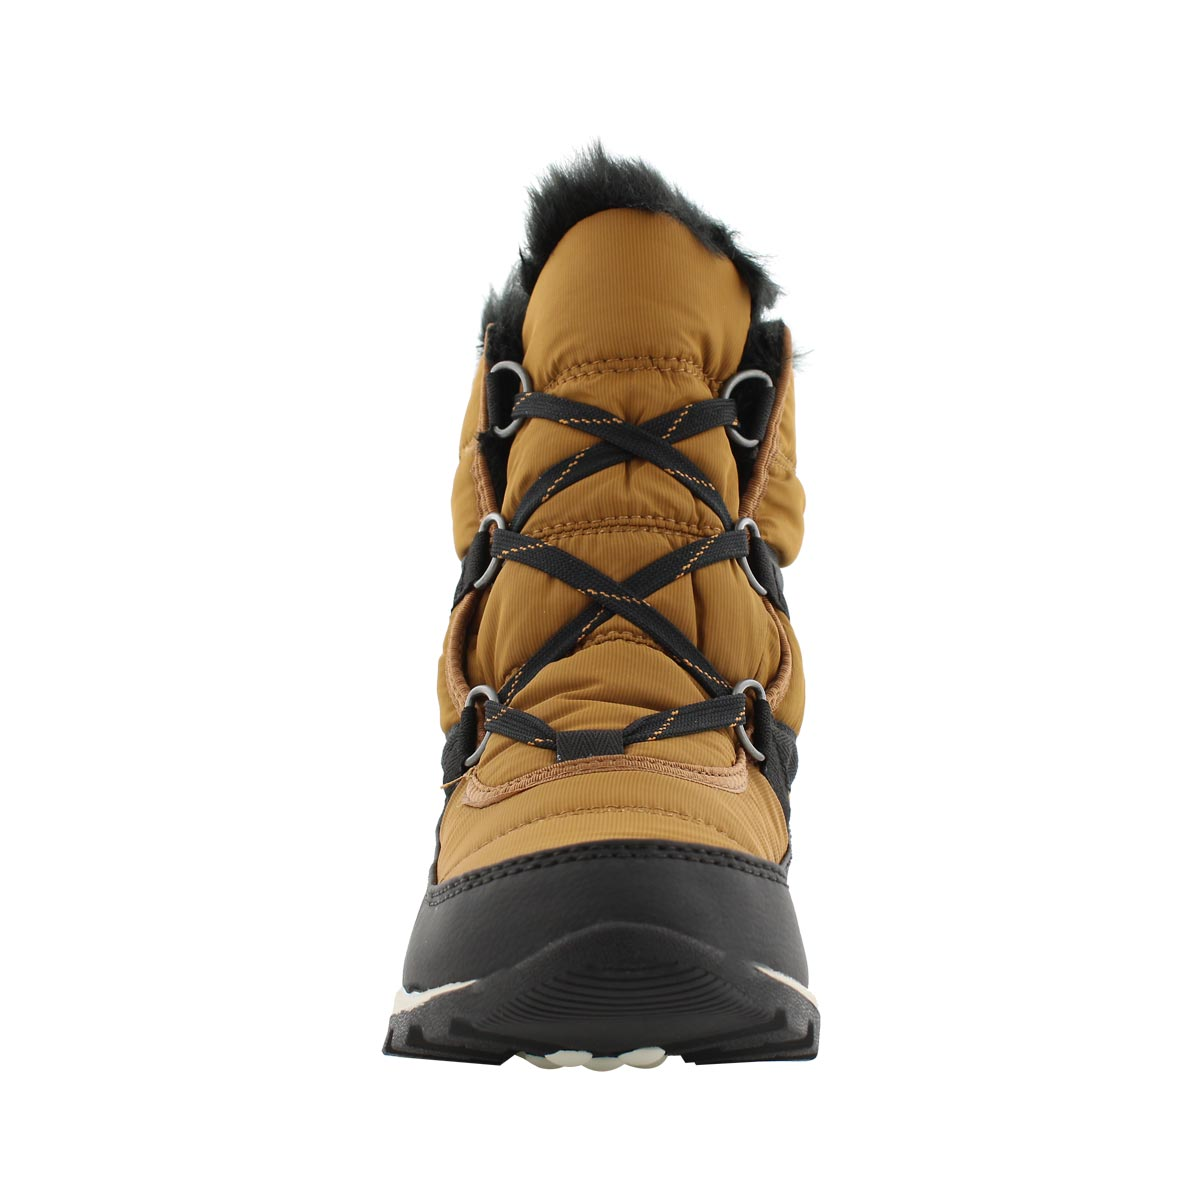 Lds WhitneyShortLace cml bn wp wntr boot